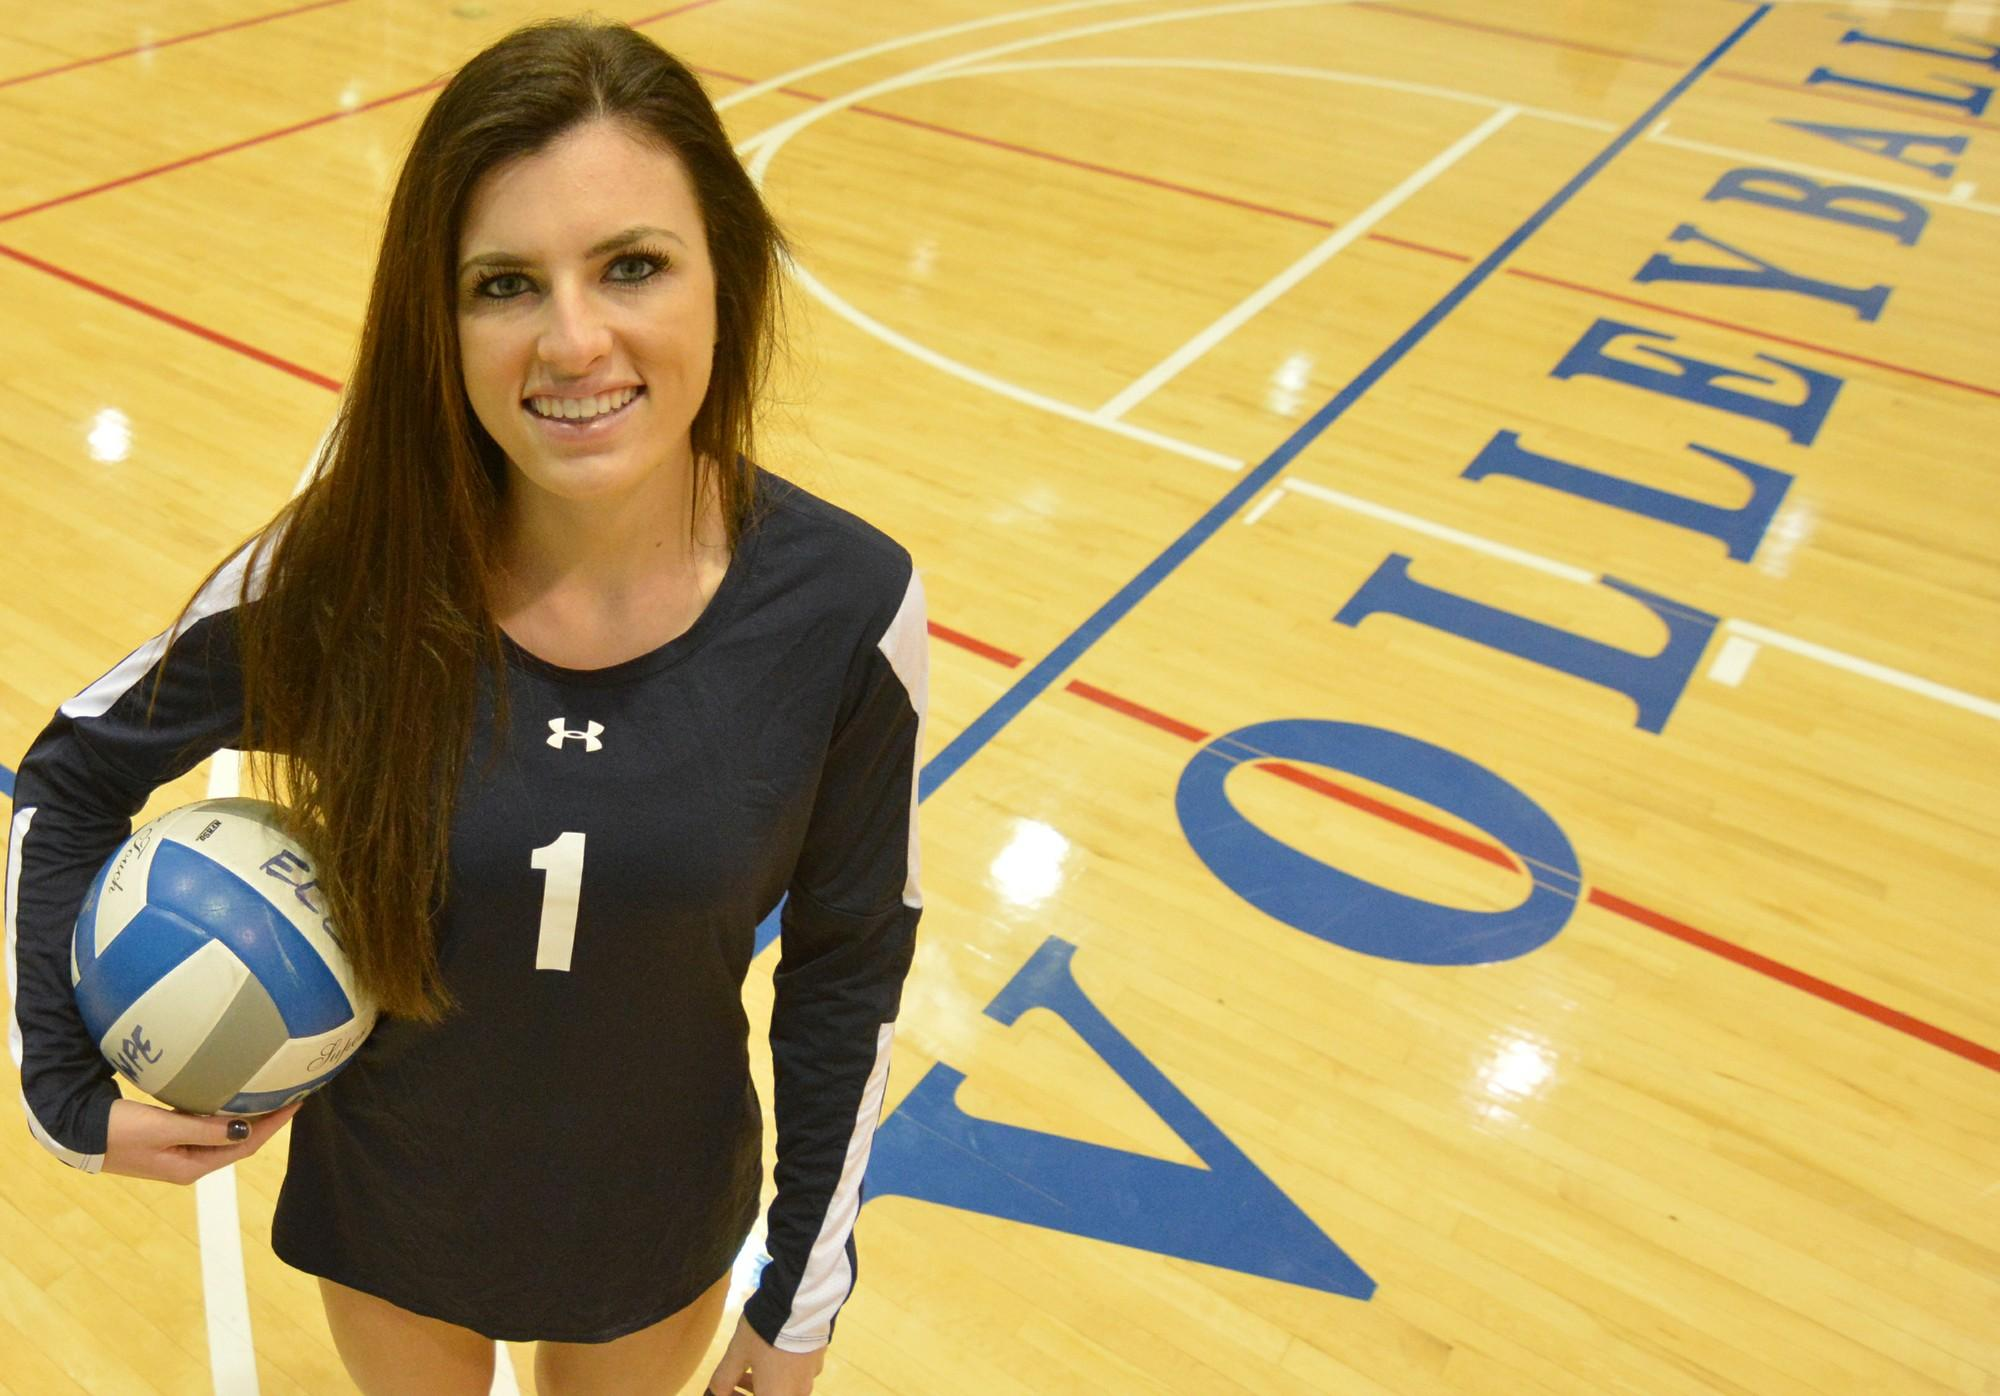 Libero plays guardian for women's volleyball